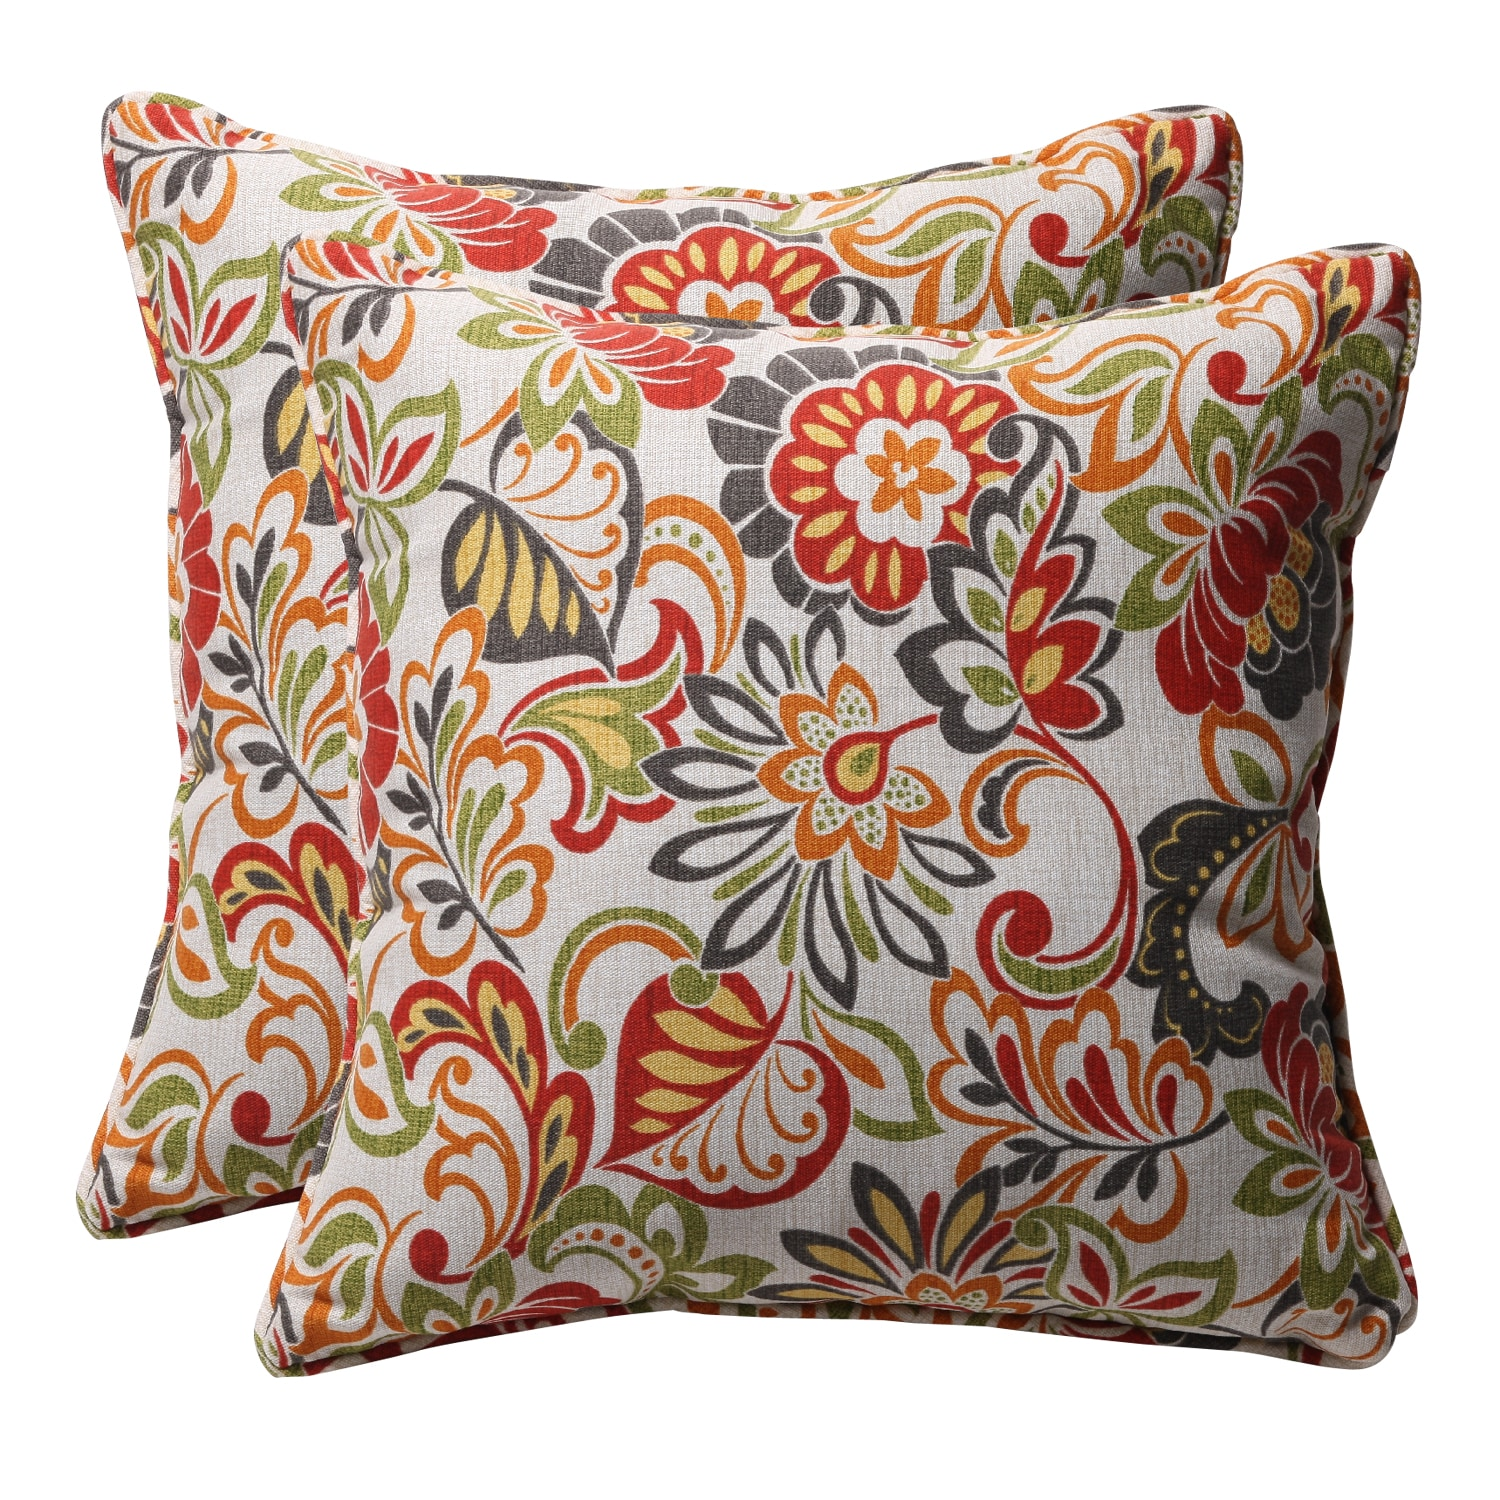 Decorative Multicolored Floral Square Outdoor Toss Pillows (Set of ...